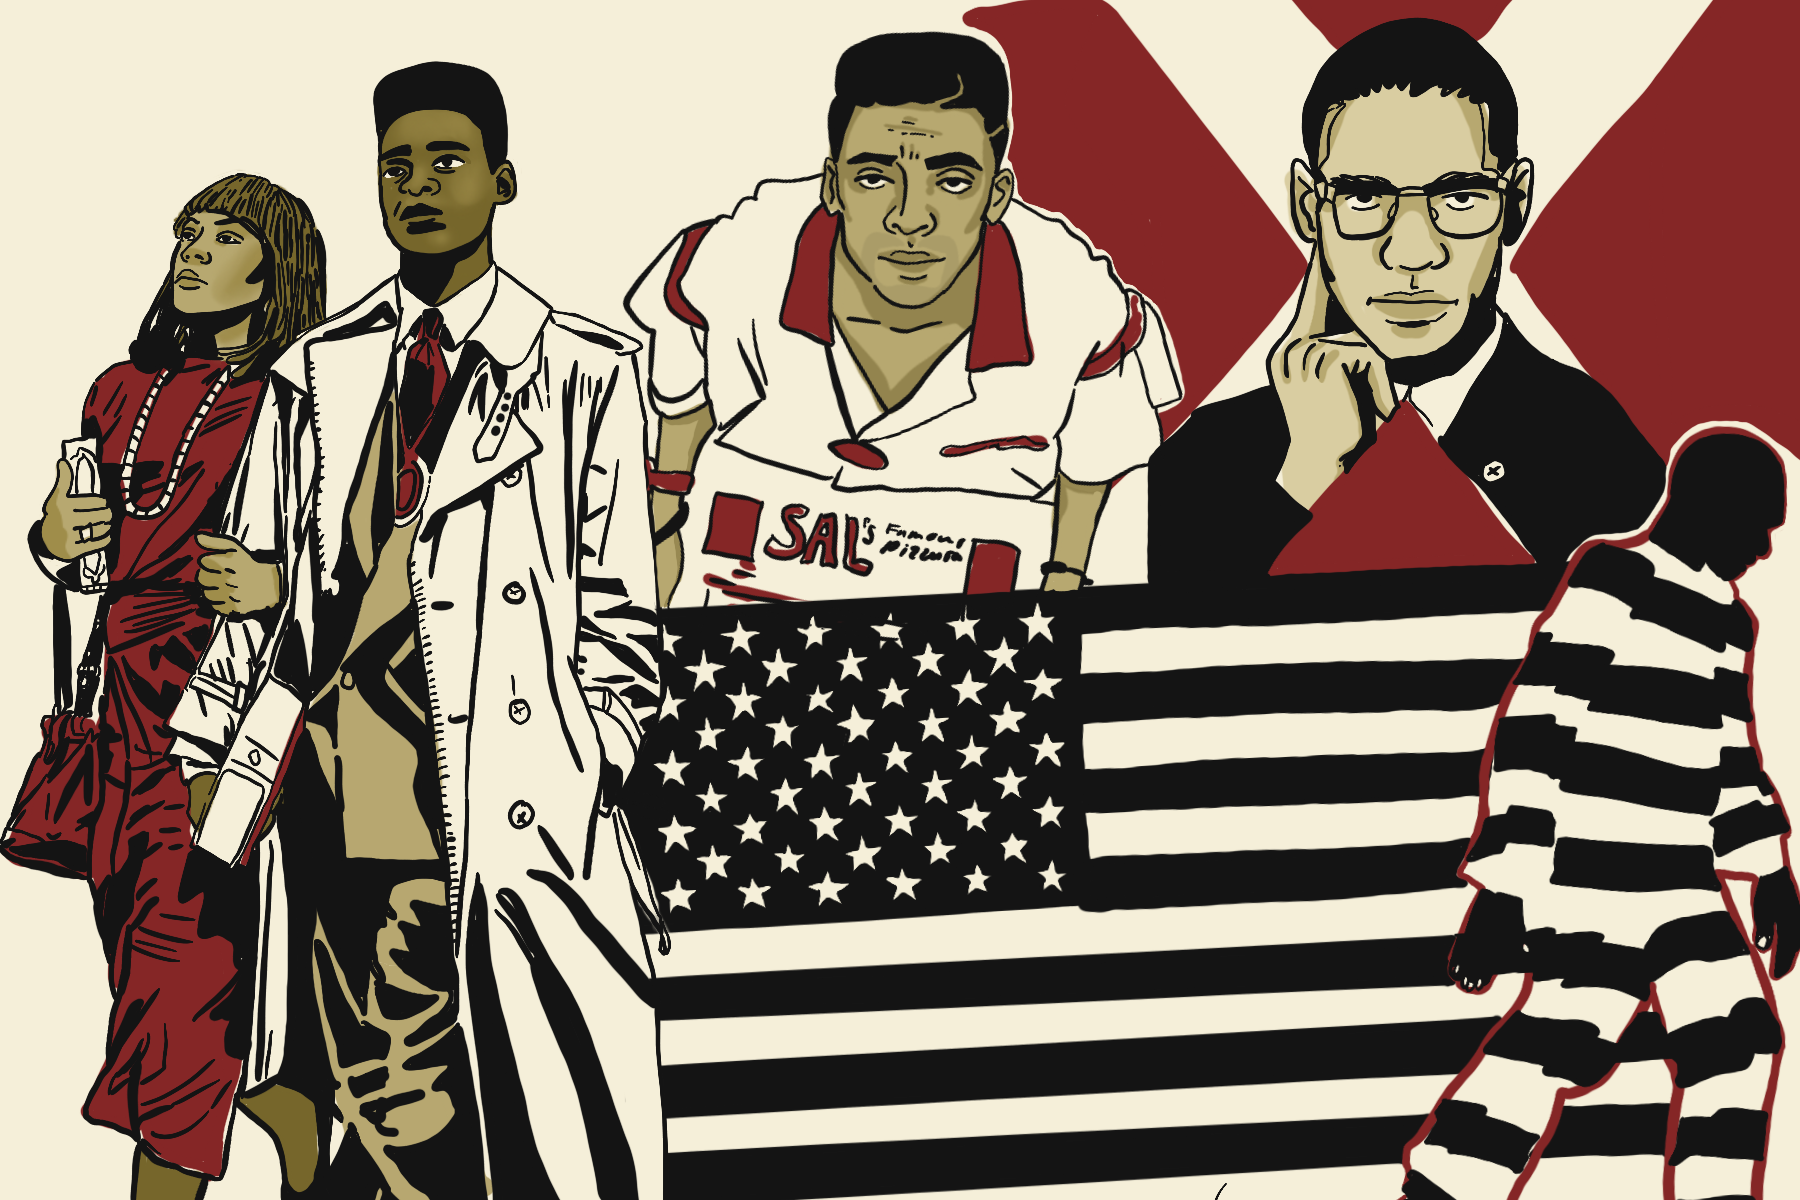 In a list of films addressing systemic racism, an illustration of famous Black historical figures behind an American flag and a man in a prison jumpsuit